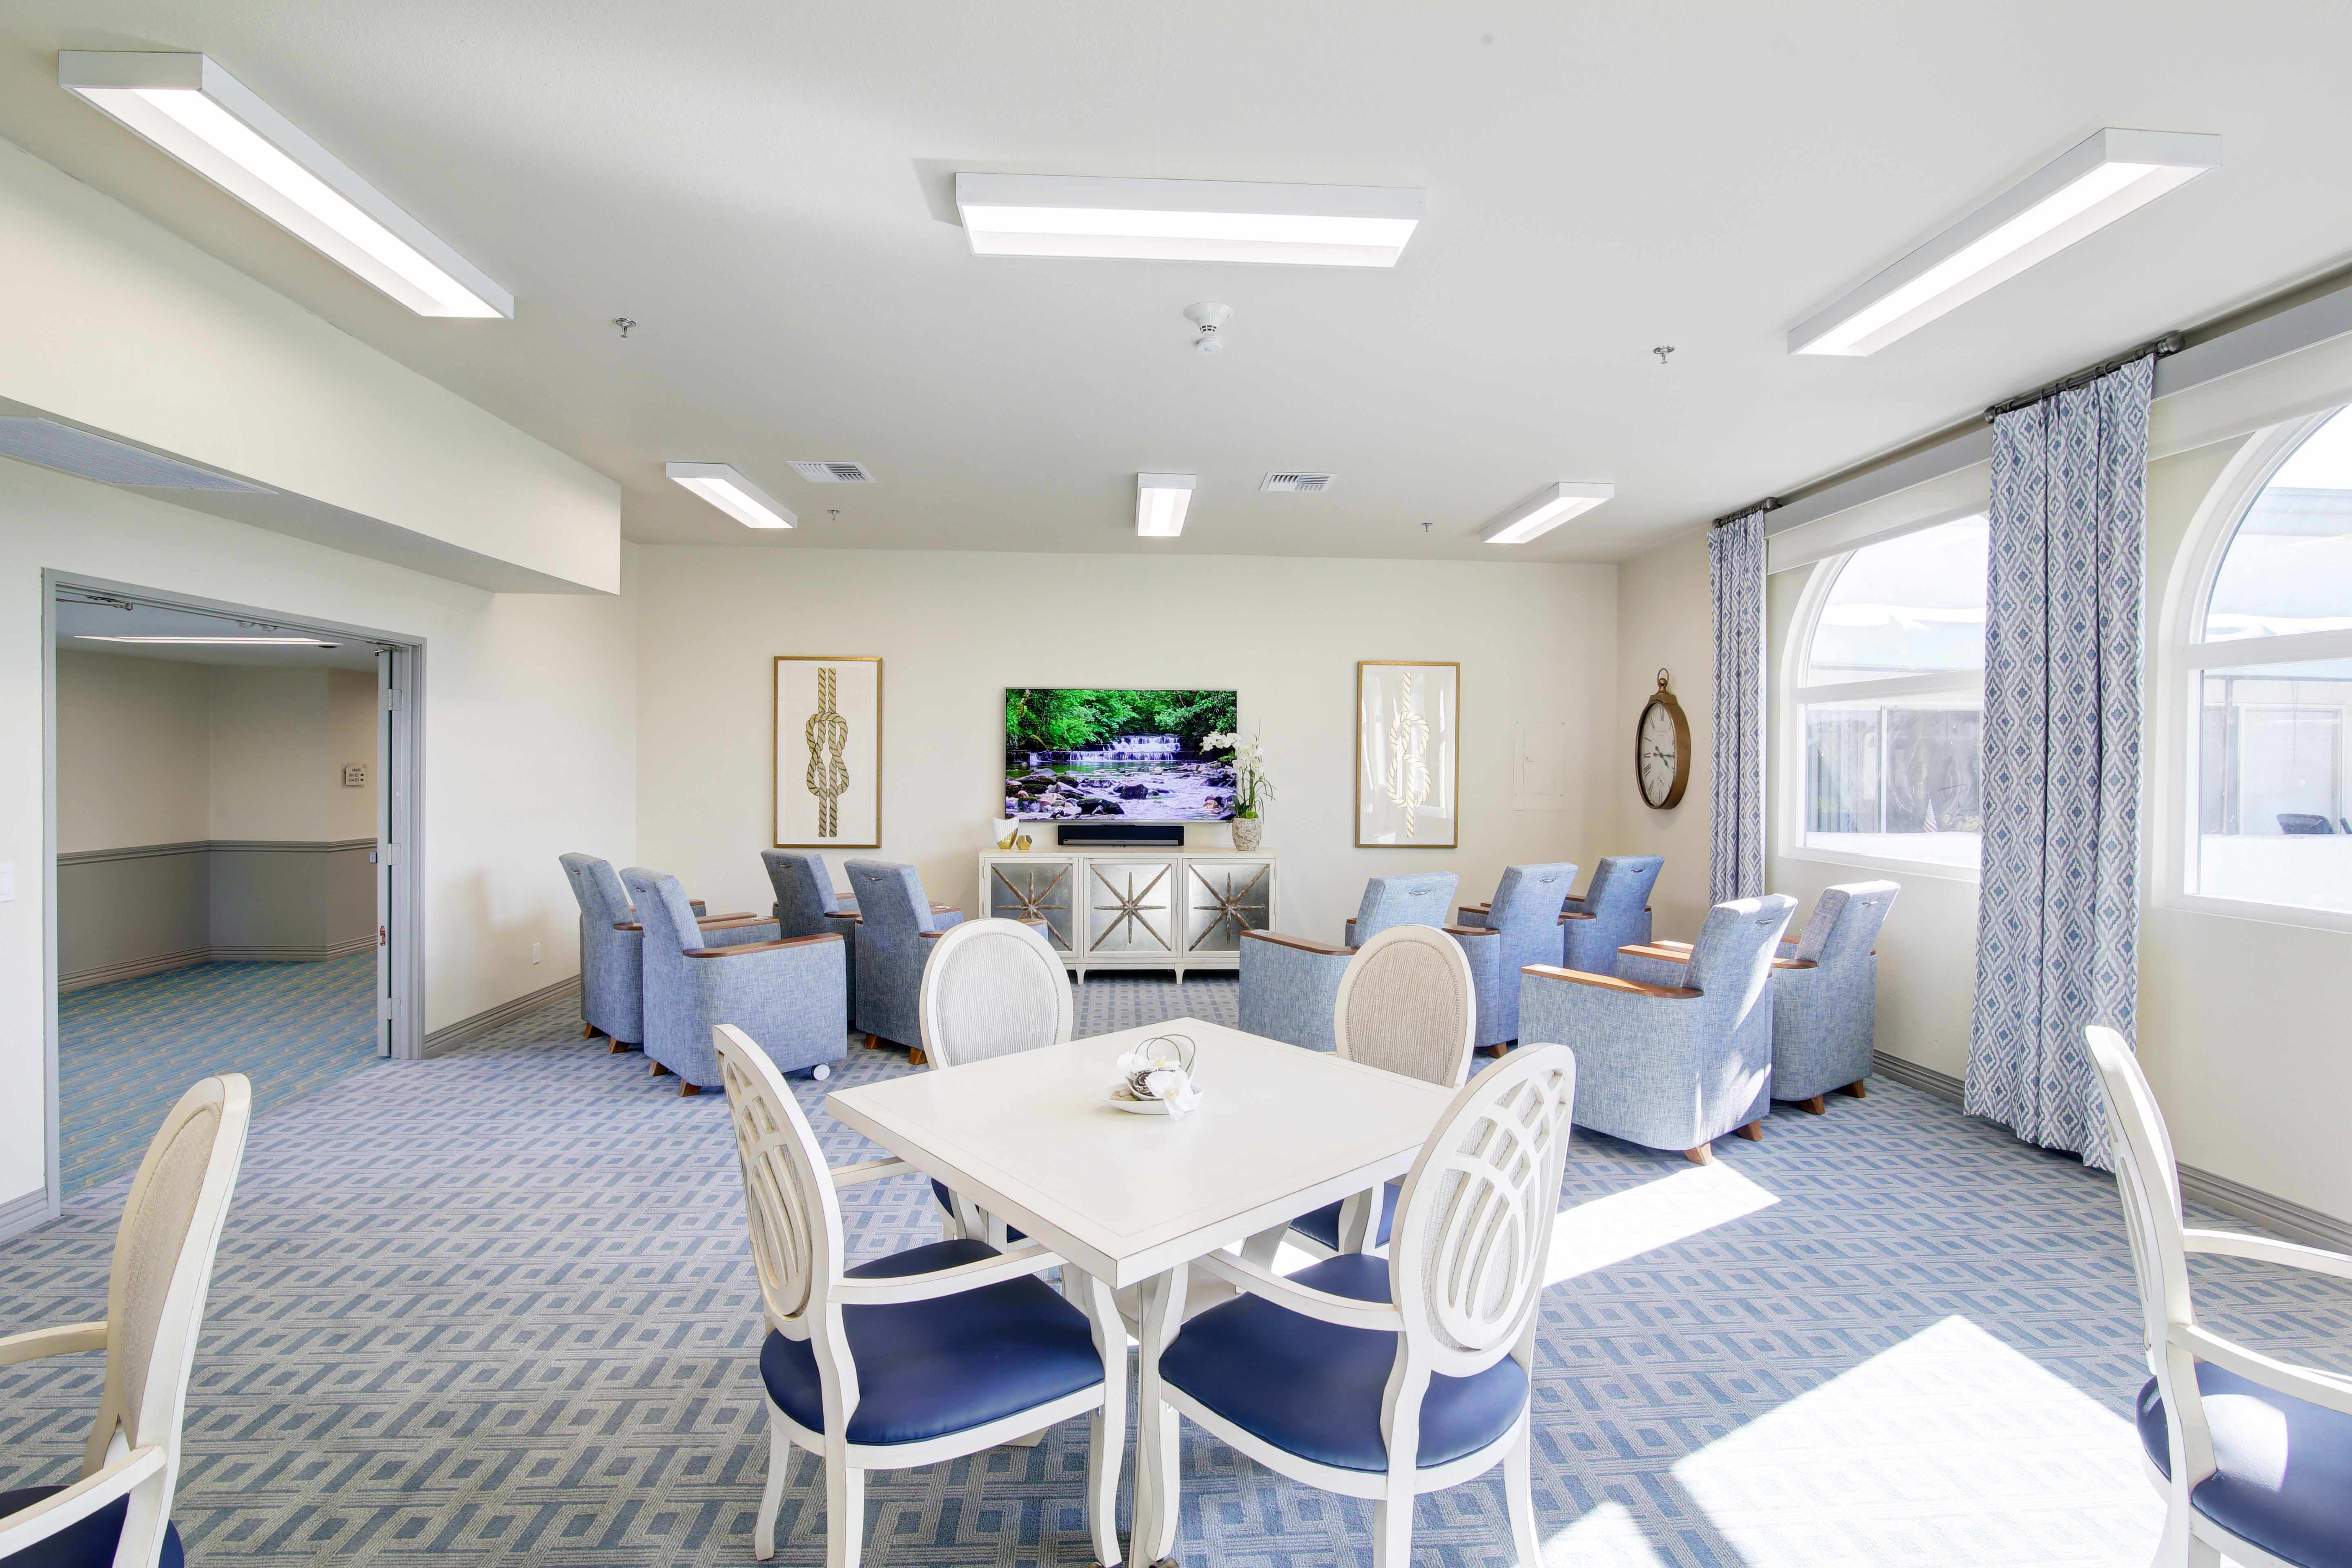 View the photos of the senior living in Costa Mesa